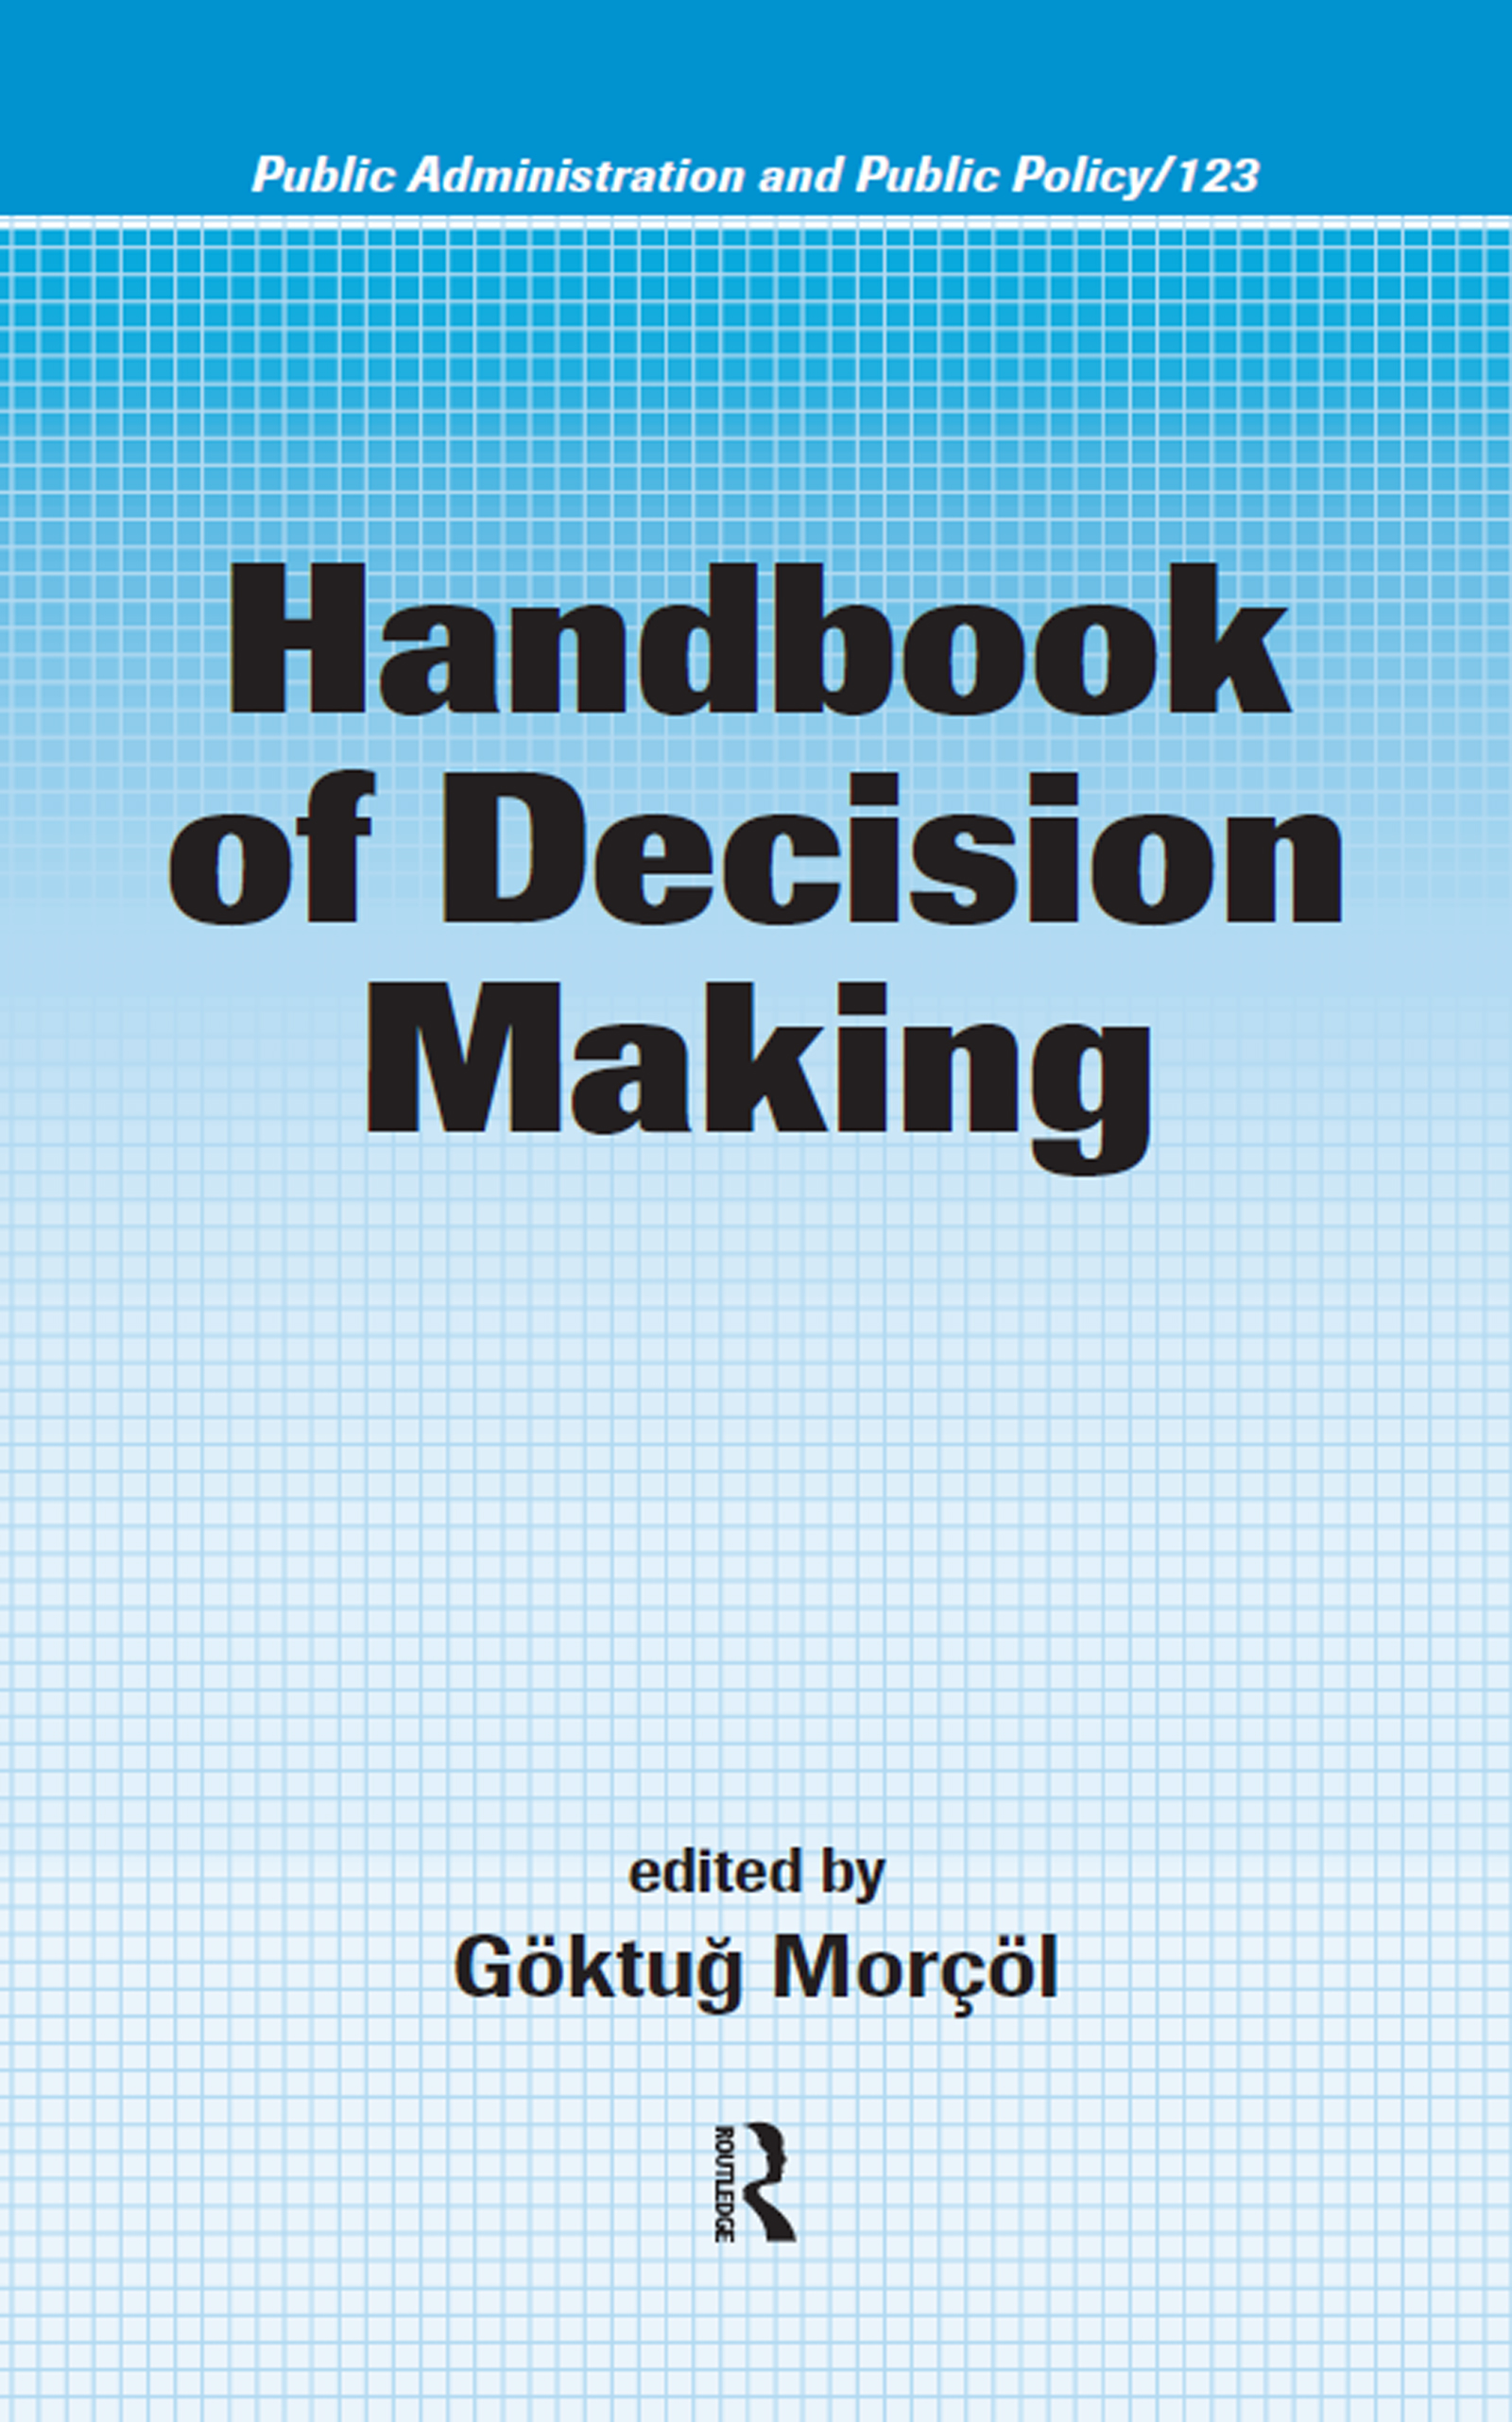 Decision Making: An Overview of Theories, Contexts, and Methods